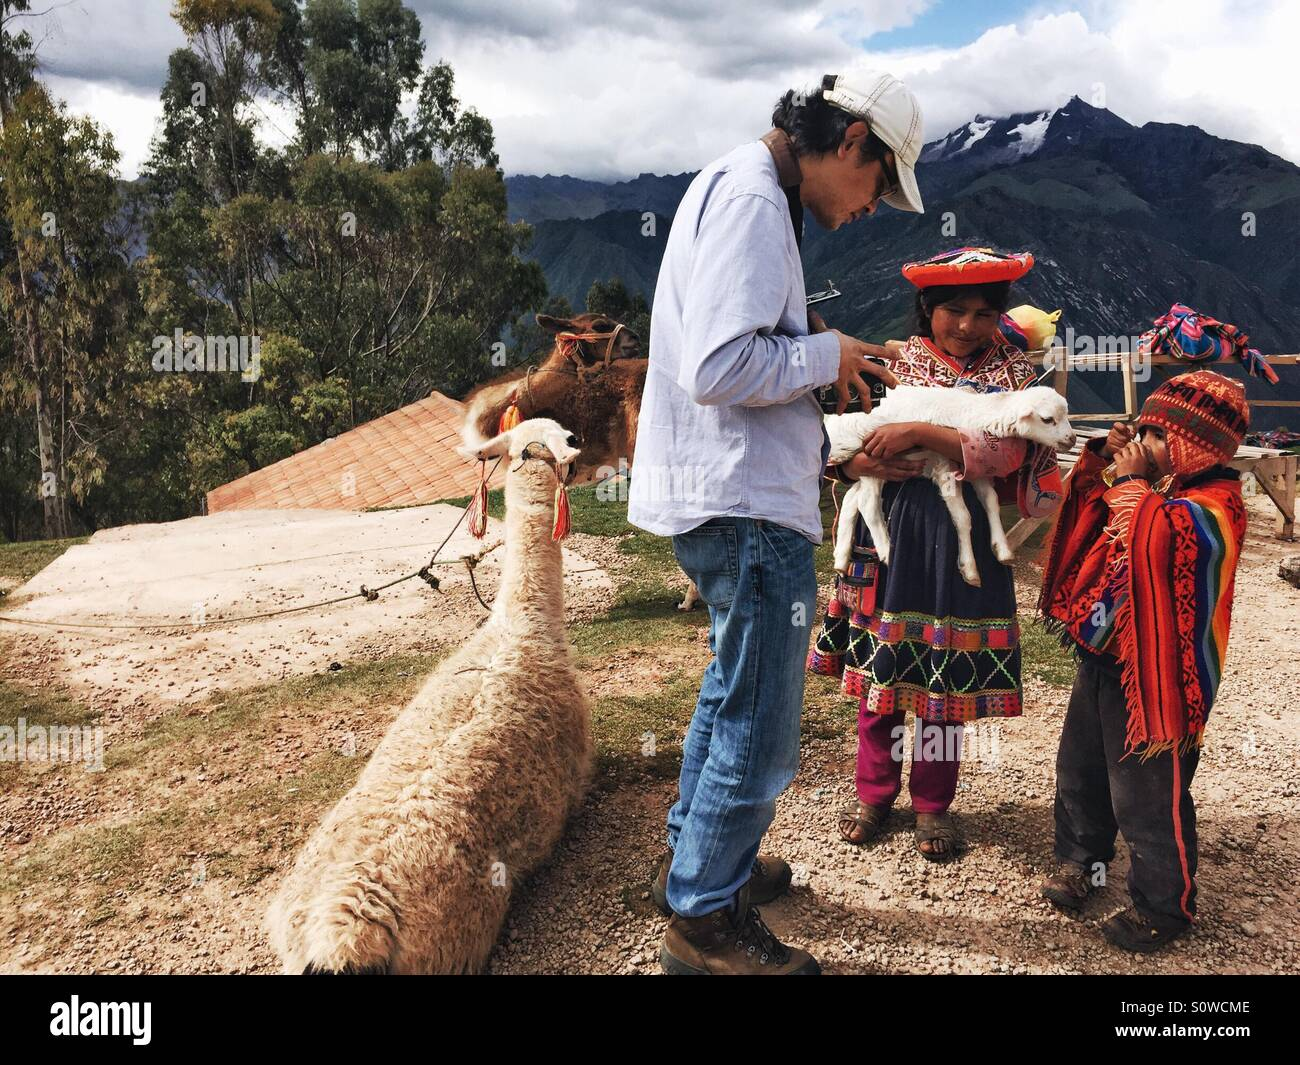 man photographing children in traditional clothes in Peru - Stock Image